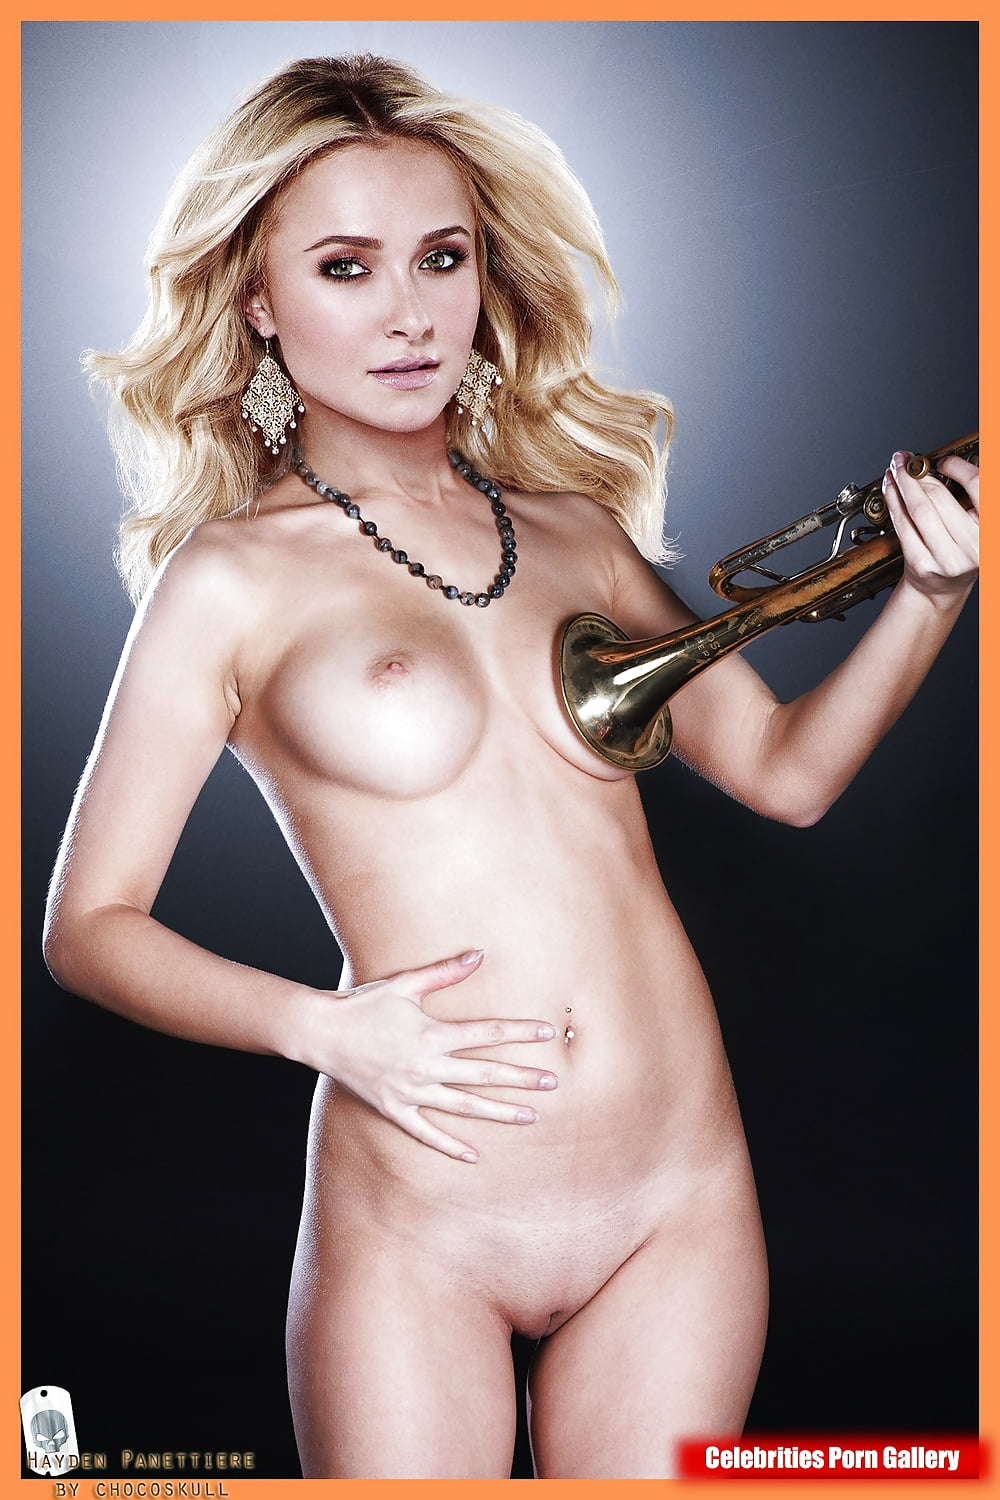 mendes-hayden-panettiere-with-a-dildo